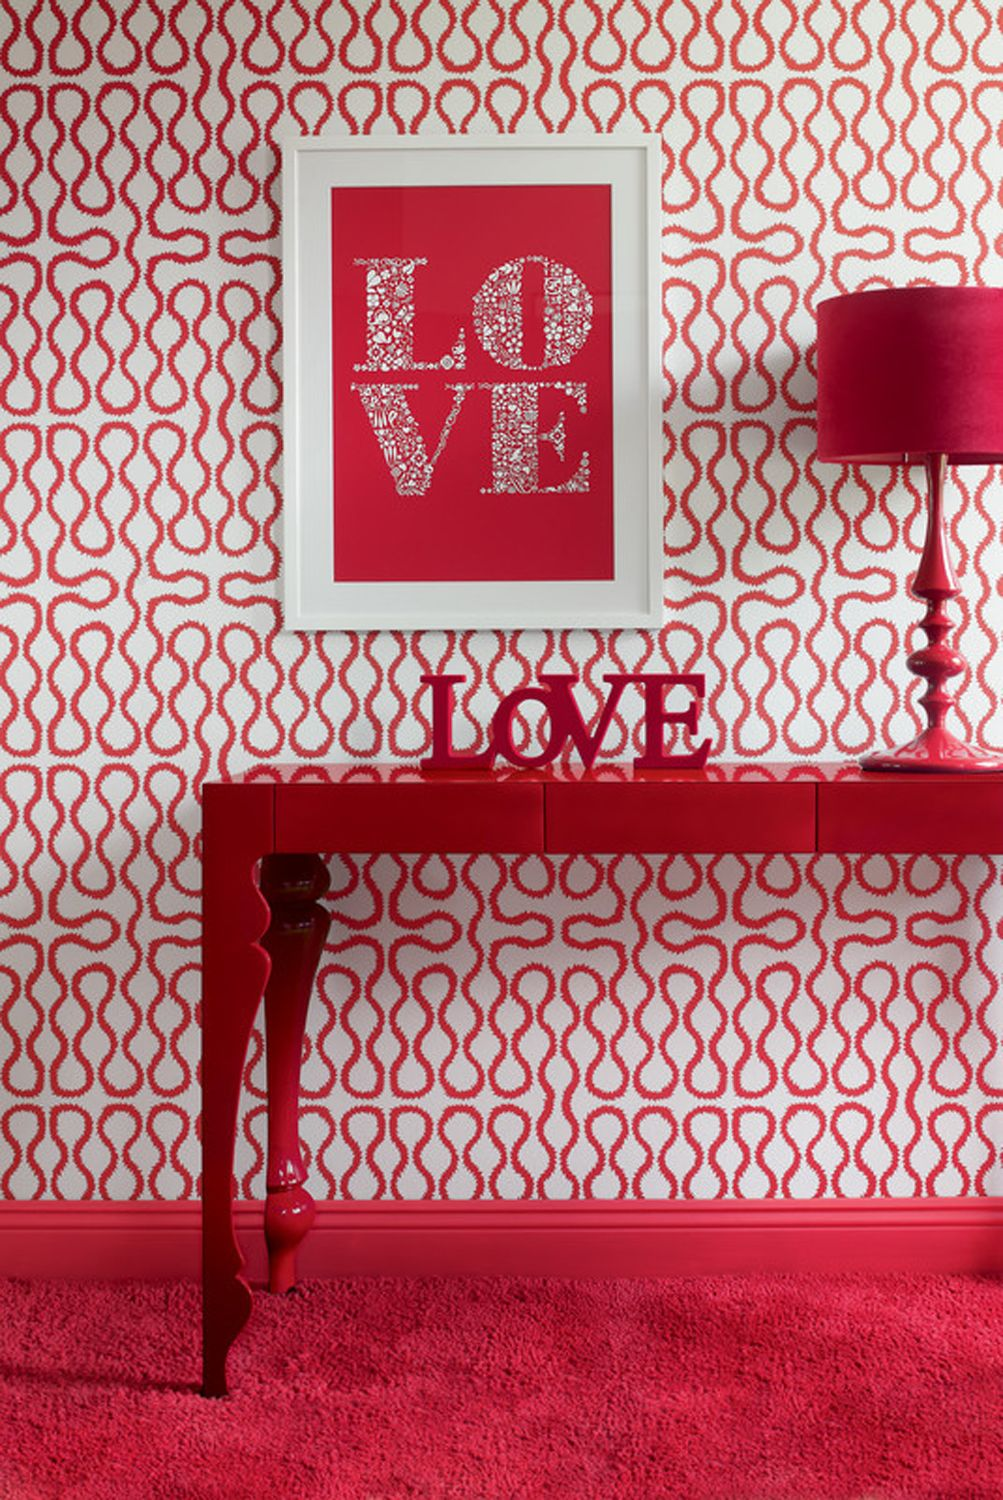 Heals louis console table by john reeves console tables red and white patterned wallpaper with red console table and lamp geotapseo Gallery